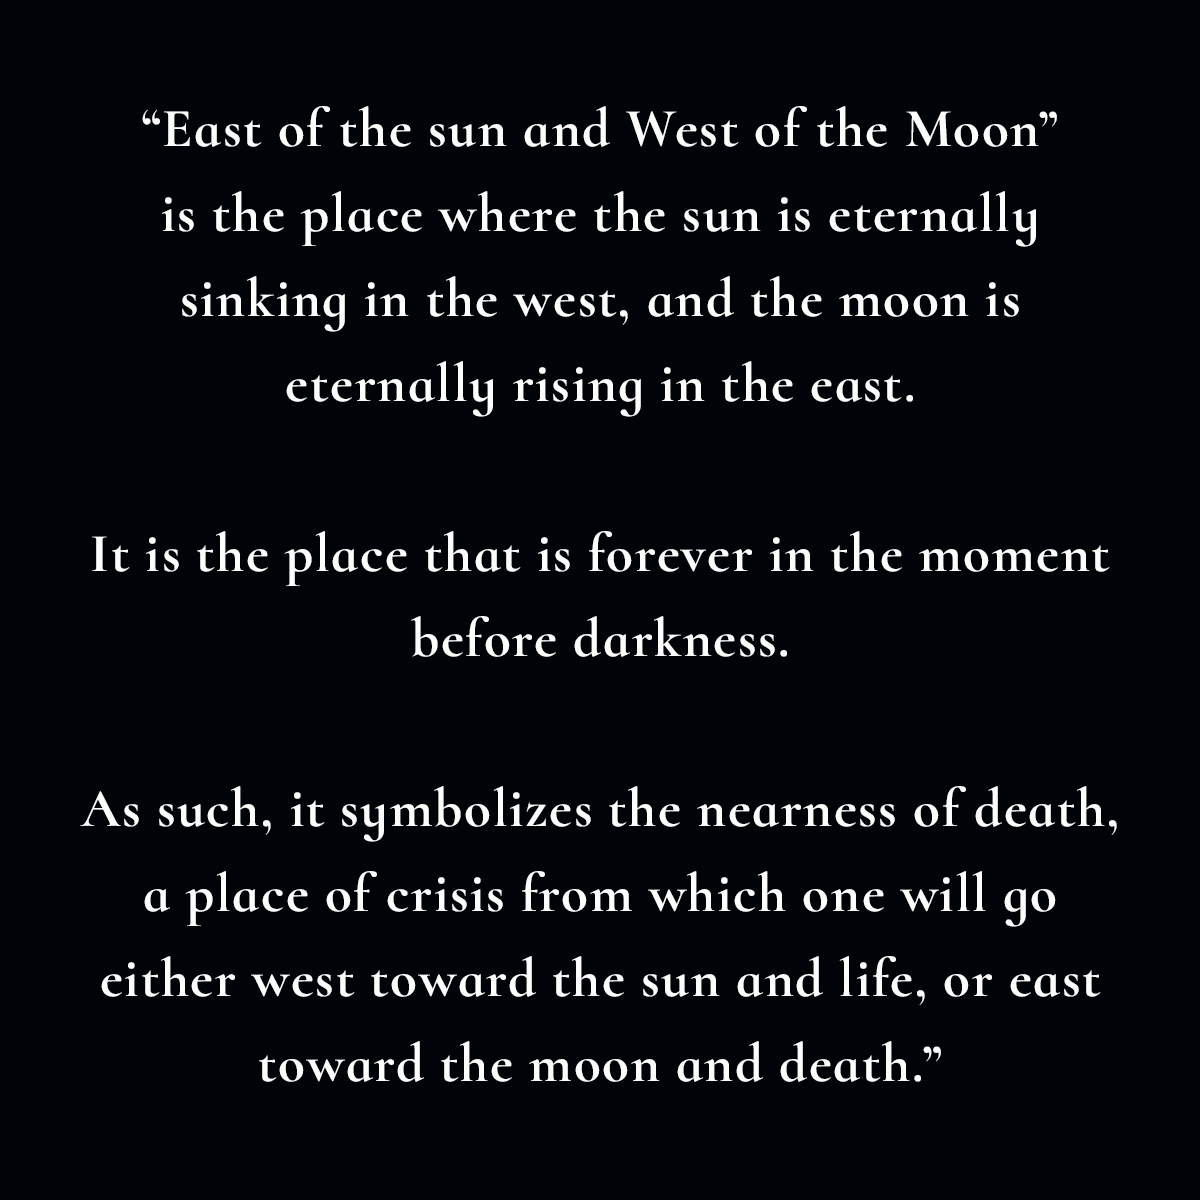 East of the sun and West of the Moon is the place where the sun is eternally sinking in the west, and the moon is eternally rising in the east. It is the place that is forever in the moment before darkness. As such, it symbolizes the nearness of death, a place of crisis from which one will go either west toward the sun and life, or east toward the moon and death.